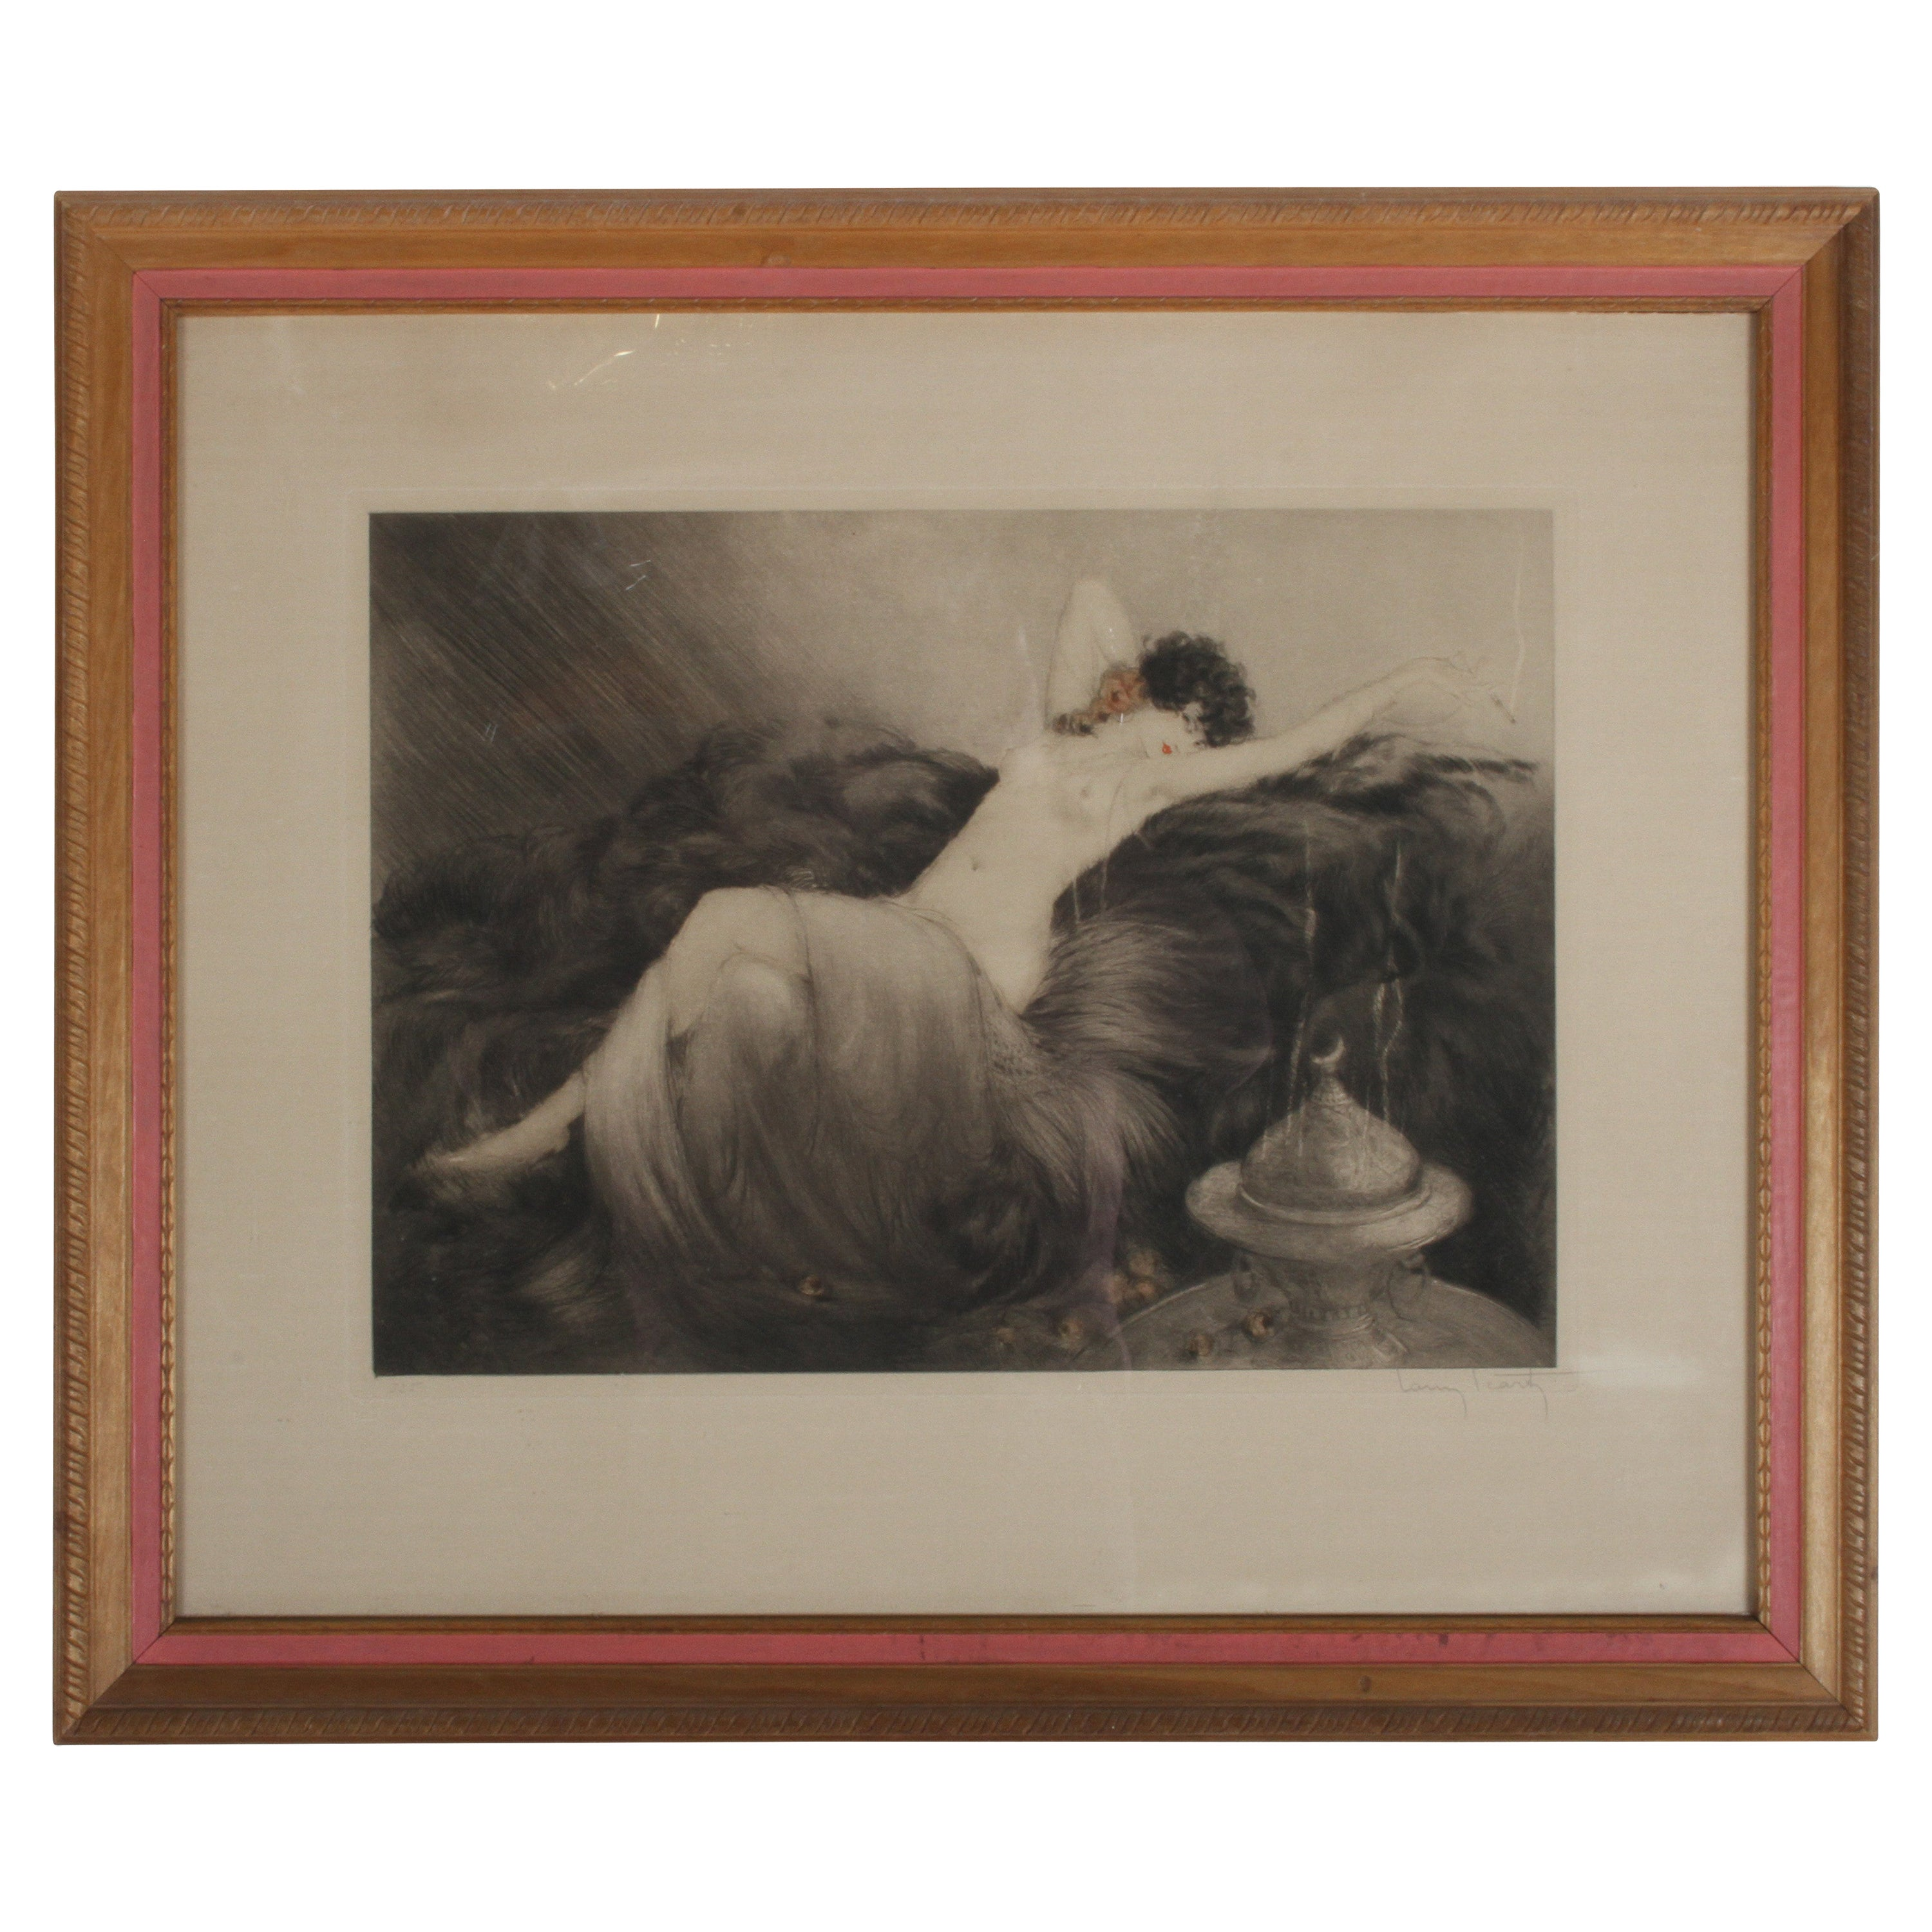 """Original Signed Louis Icart Etching Titled """"Idleness"""" or Laziness"""" Bear Rug 1925"""